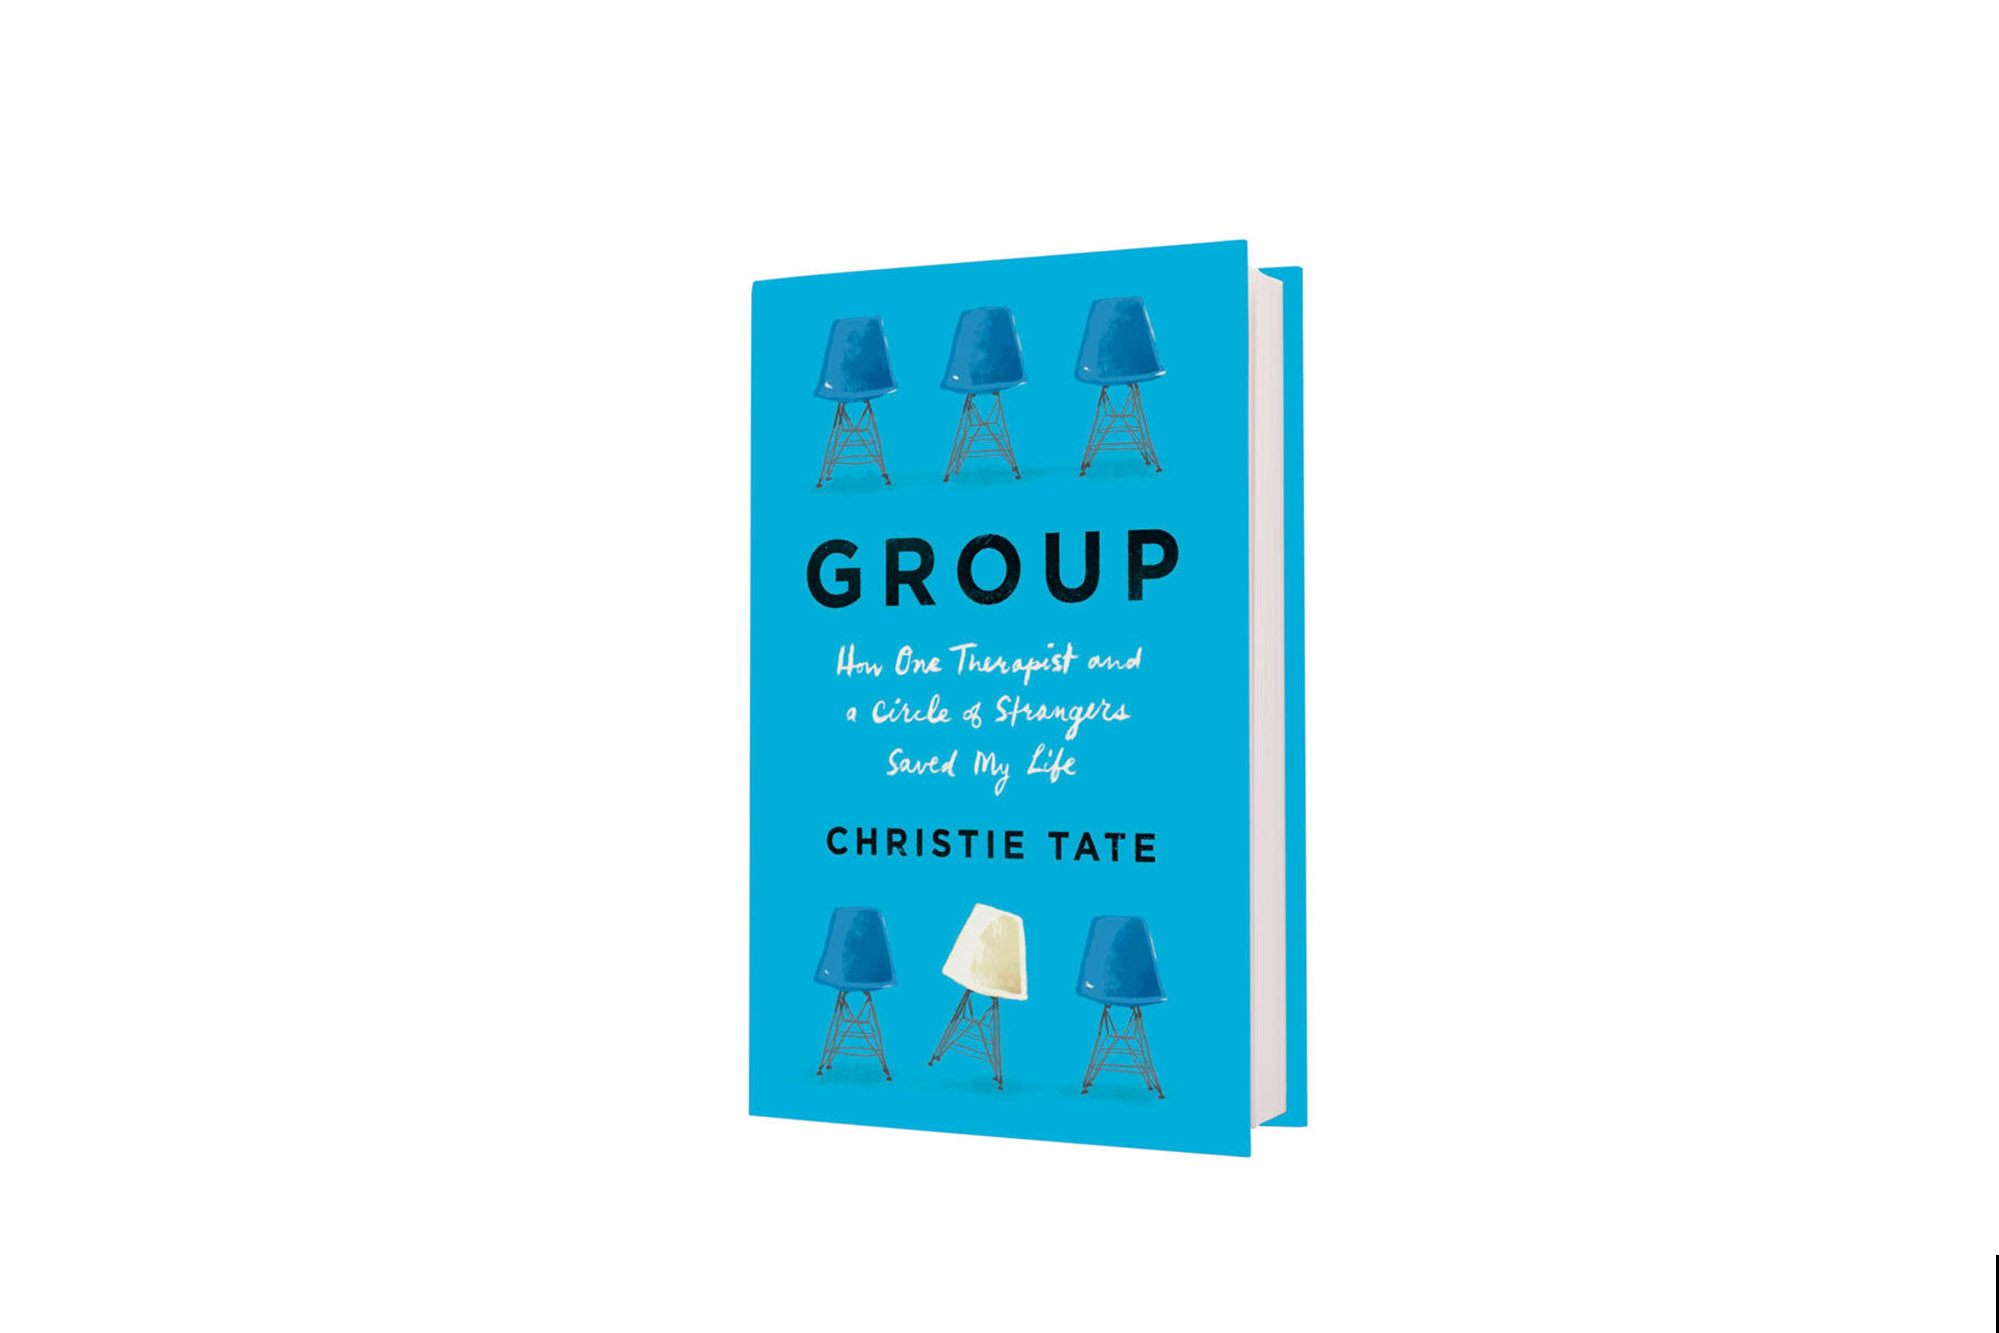 Group by Christie Tate